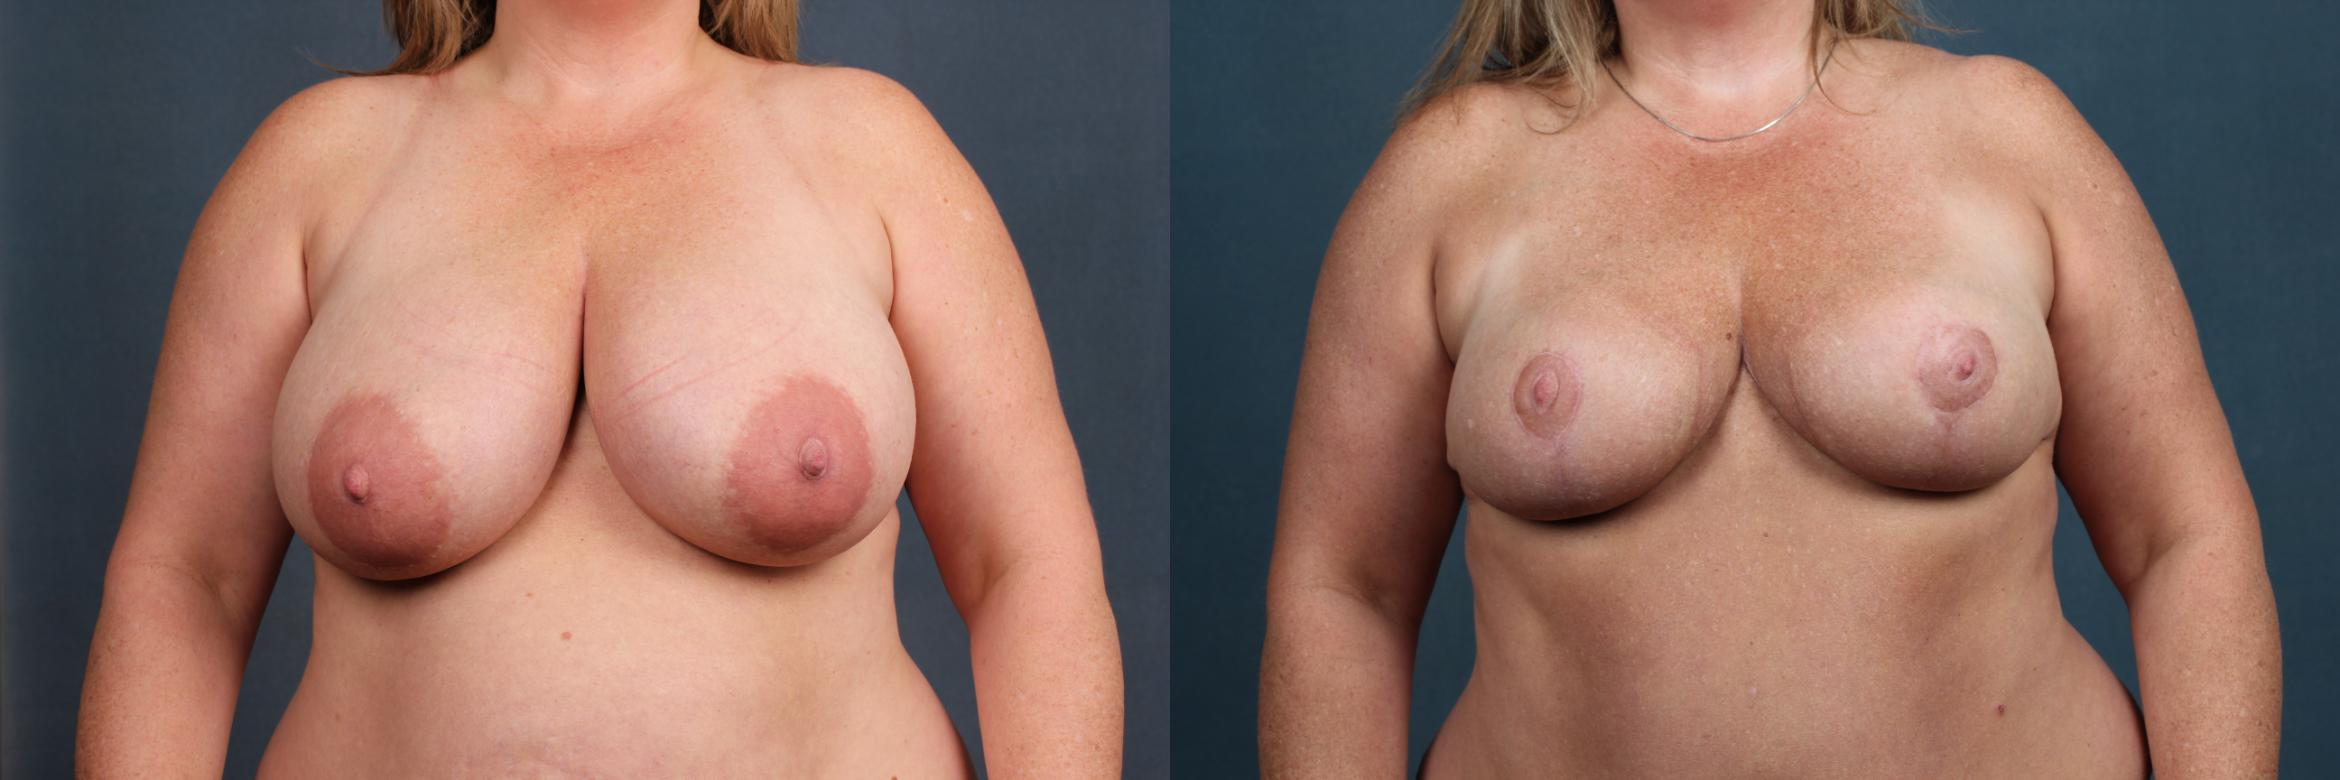 Reduction Case 443 Before & After View #1 | Louisville, KY | CaloAesthetics® Plastic Surgery Center